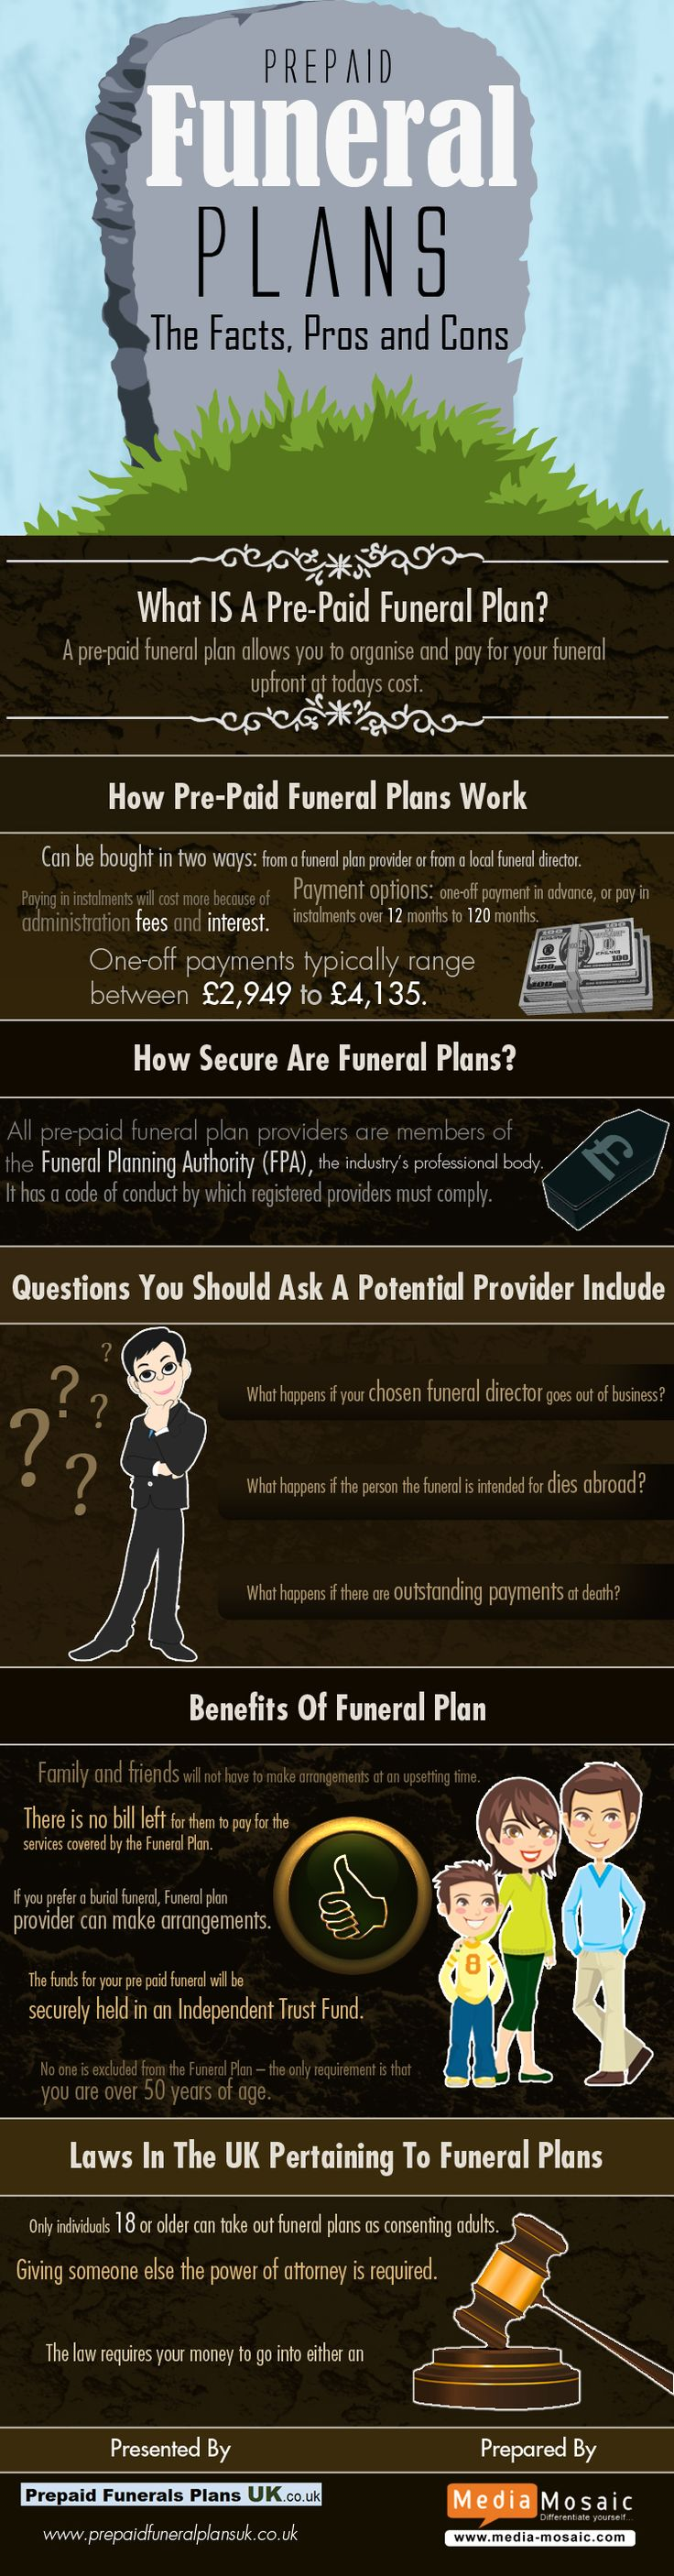 A.W. LYMN Prepaid Funeral Plans – The Facts ,Pros and Cons  #infographic